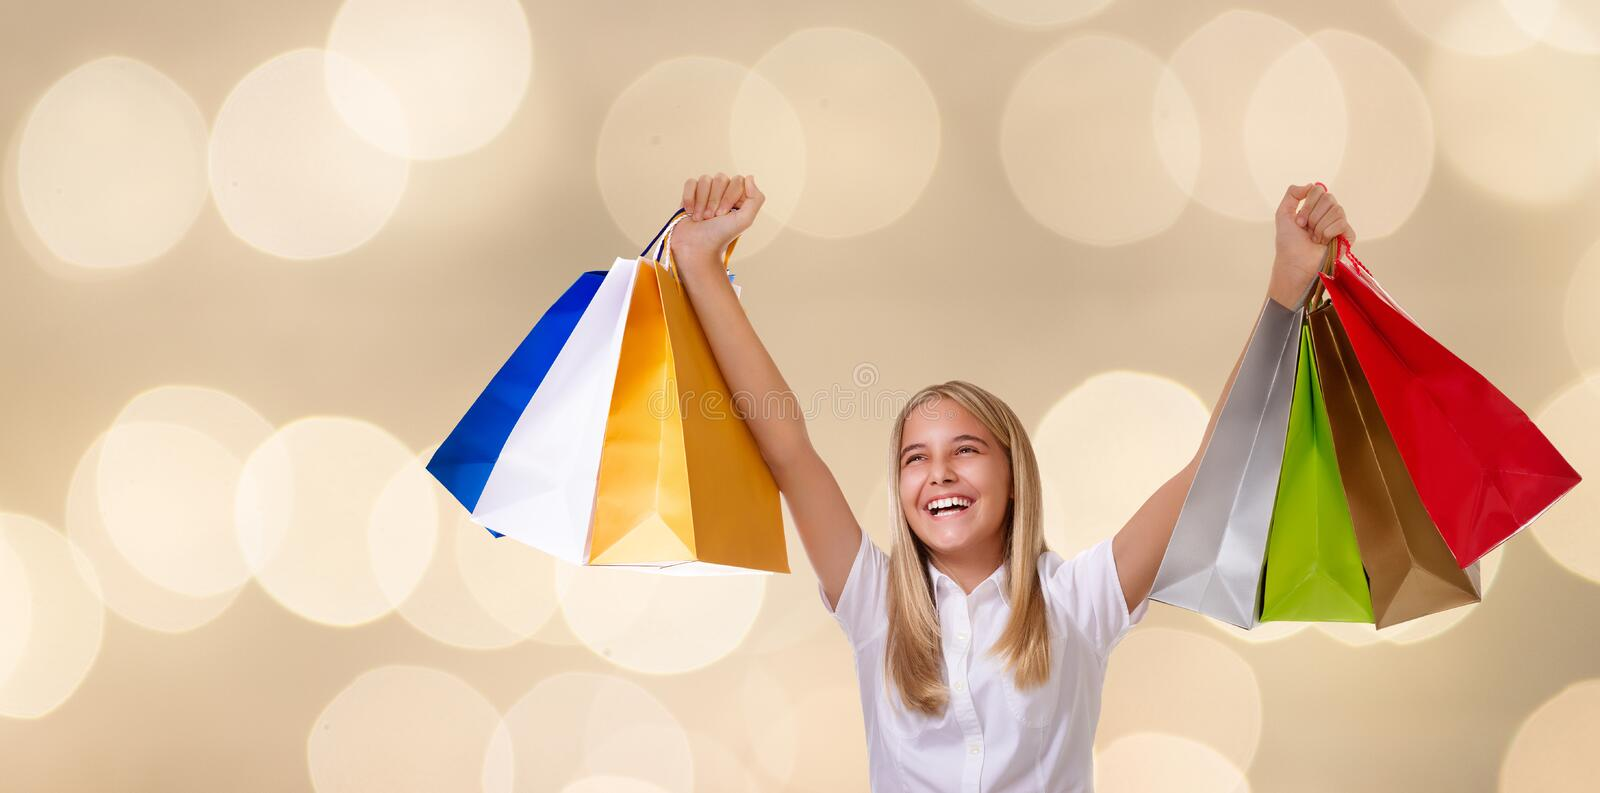 Shopping,holiday and tourism concept - young girl with shopping bags over beige background stock image